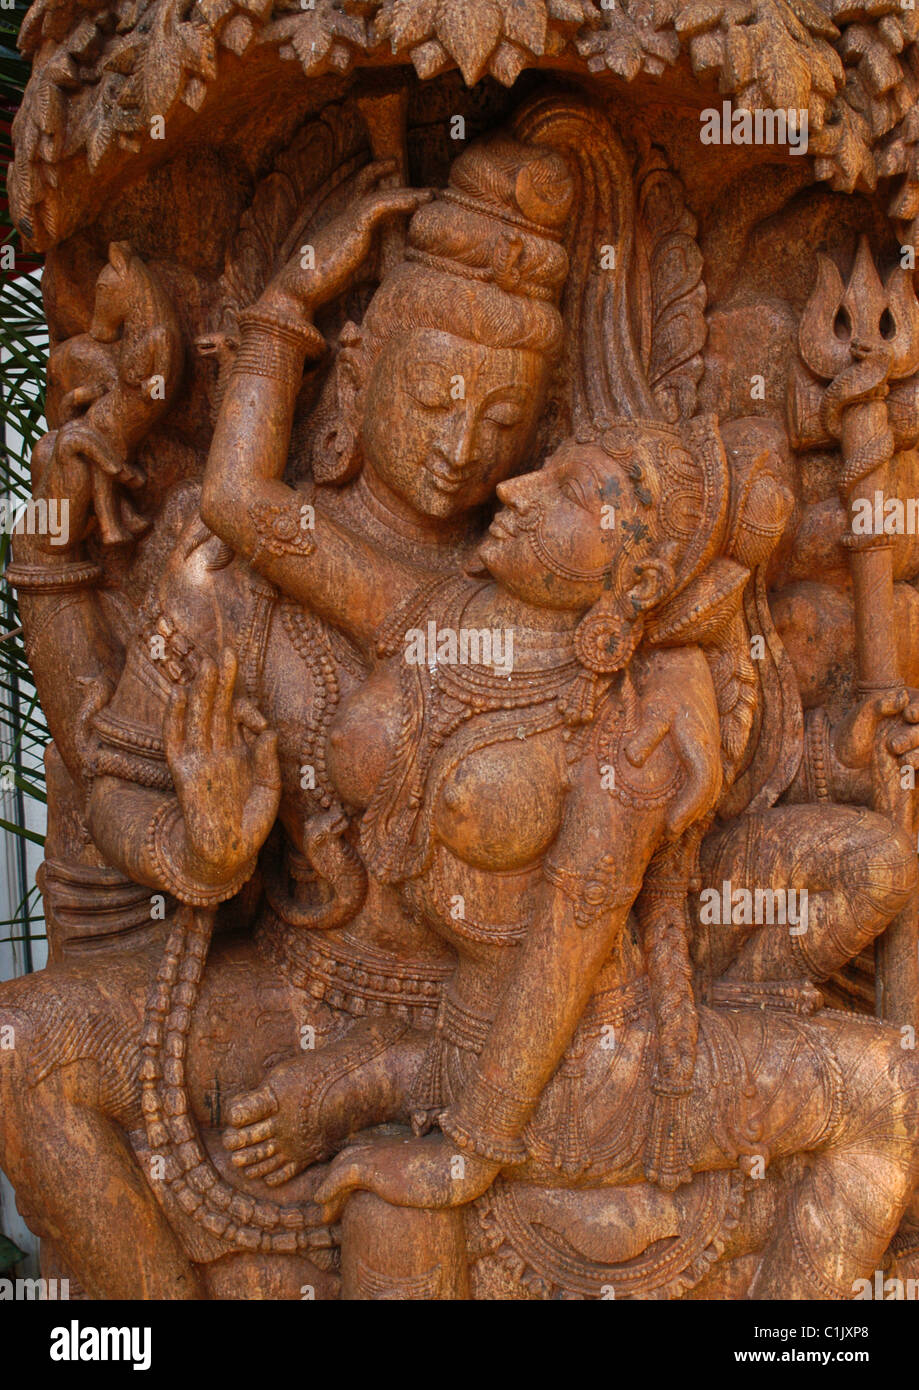 Hand carved statue in red marble of lord shiva and goddess parvati hand carved statue in red marble of lord shiva and goddess parvati depicting enchanting spiritual symbol of truth and energy biocorpaavc